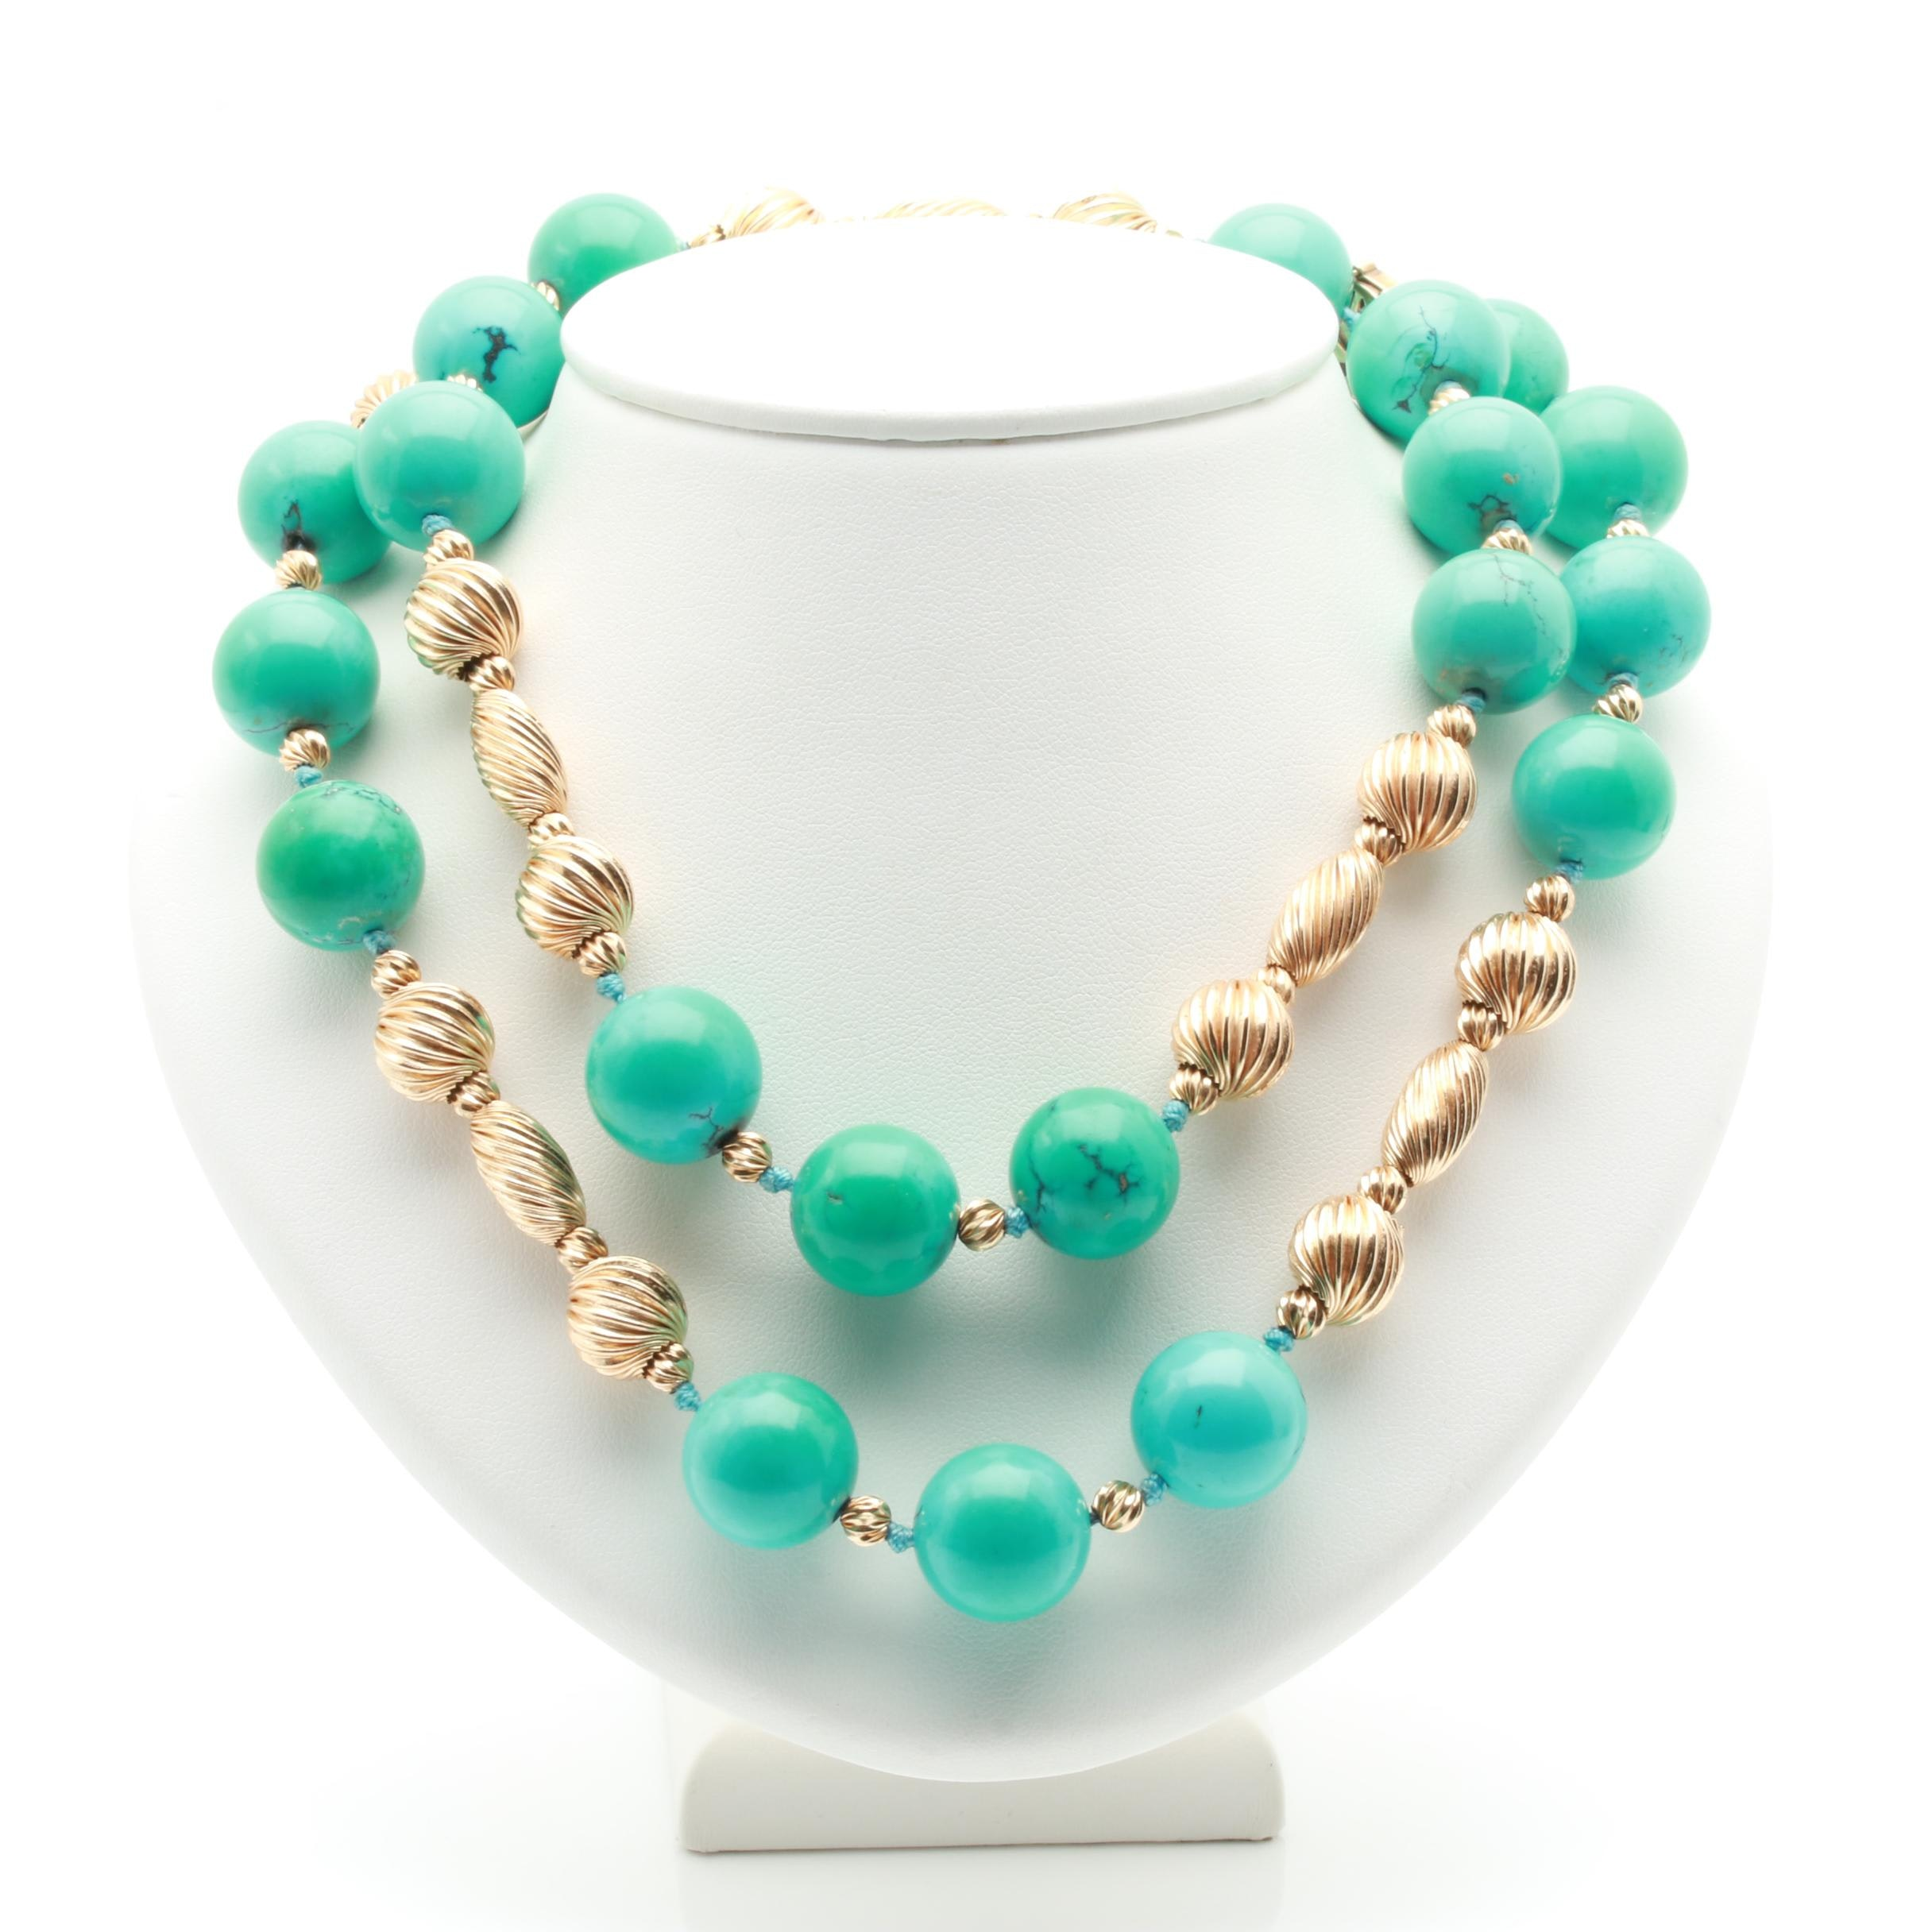 14K Yellow Gold Stabilized Turquoise Beaded Necklace